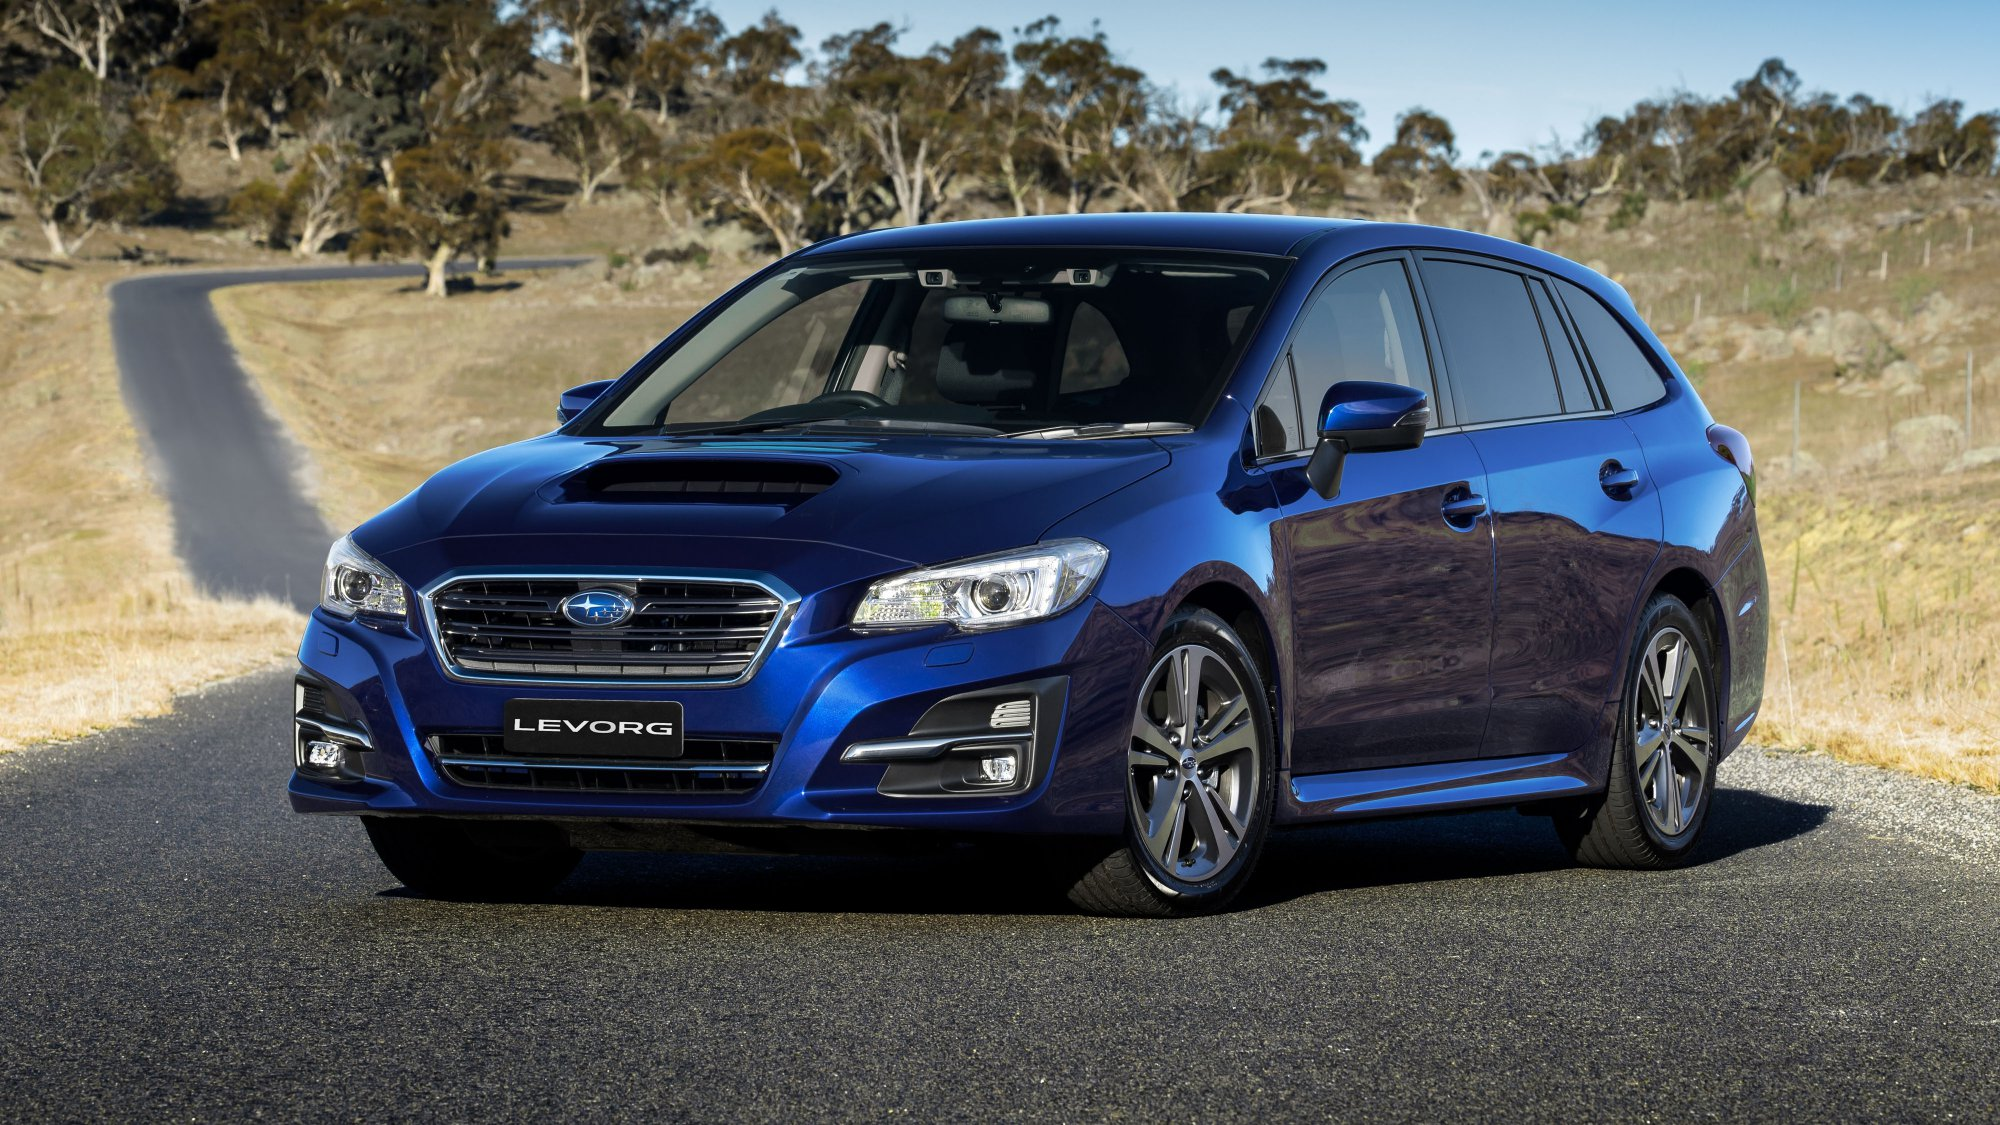 News Subaru Updates 2018 Levorg Lineup Lower Price Of